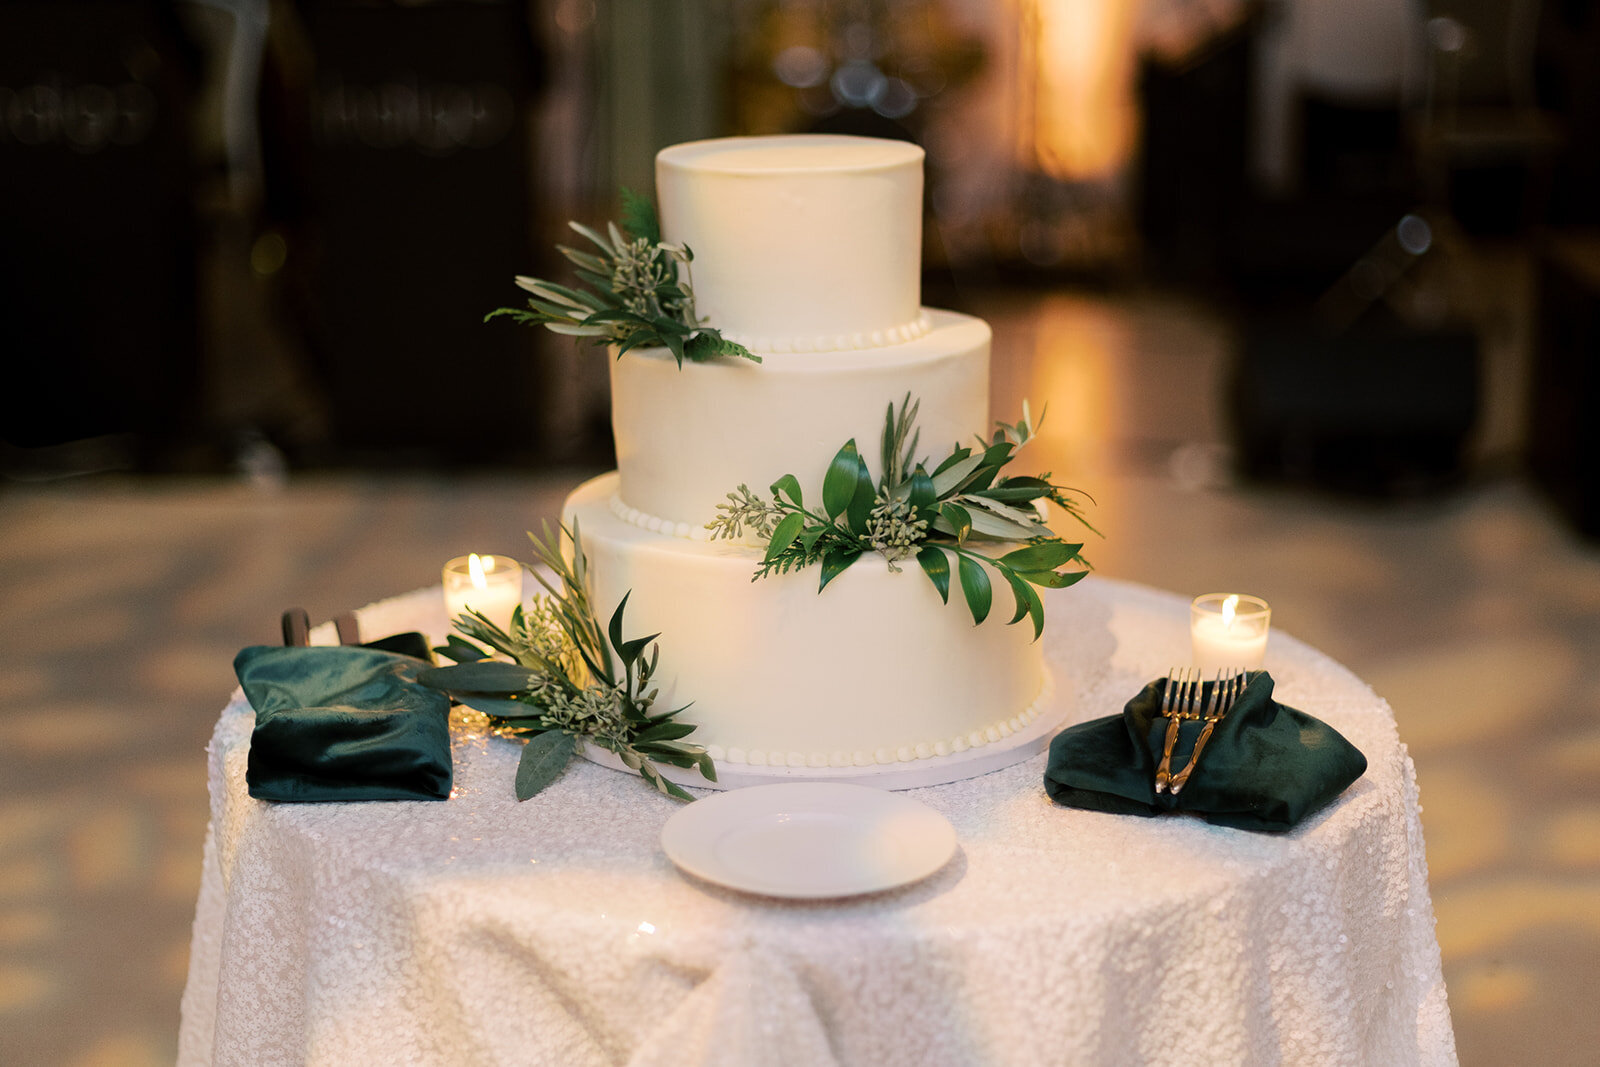 30-Venue-Six10-Wedding-cake